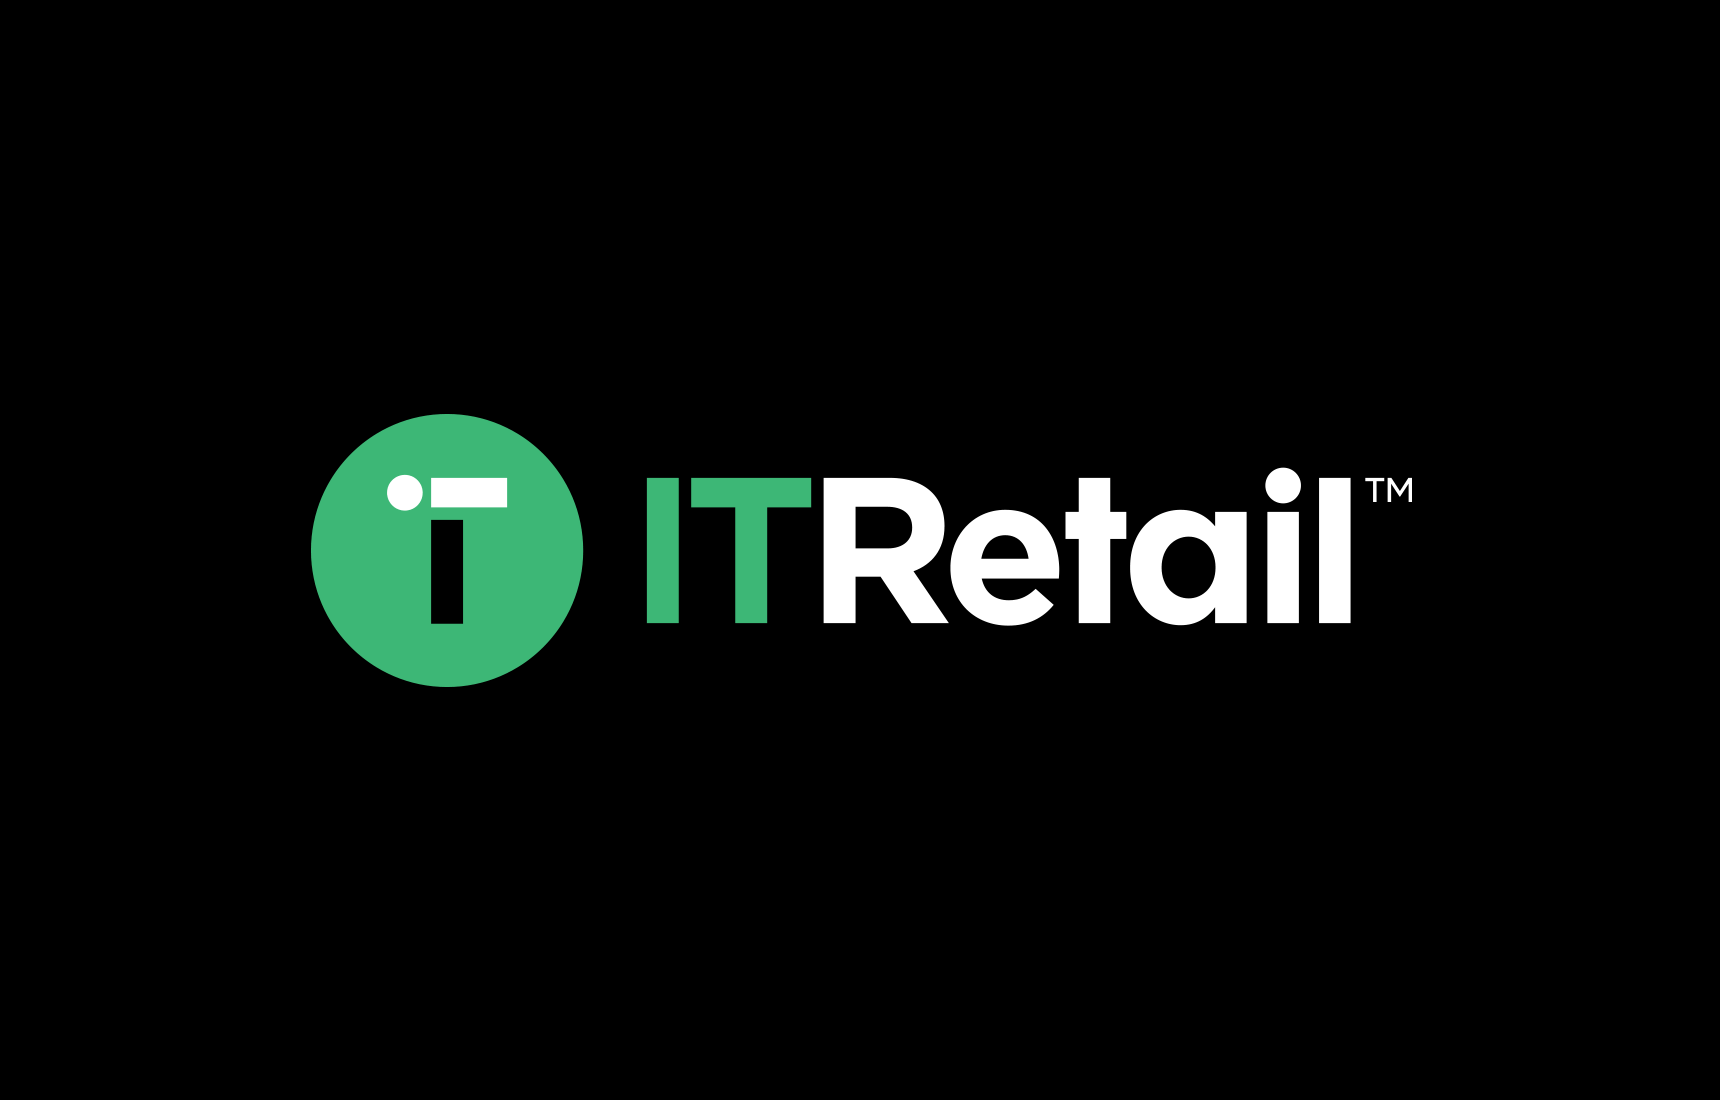 IT Retail logo in reverse on black background.